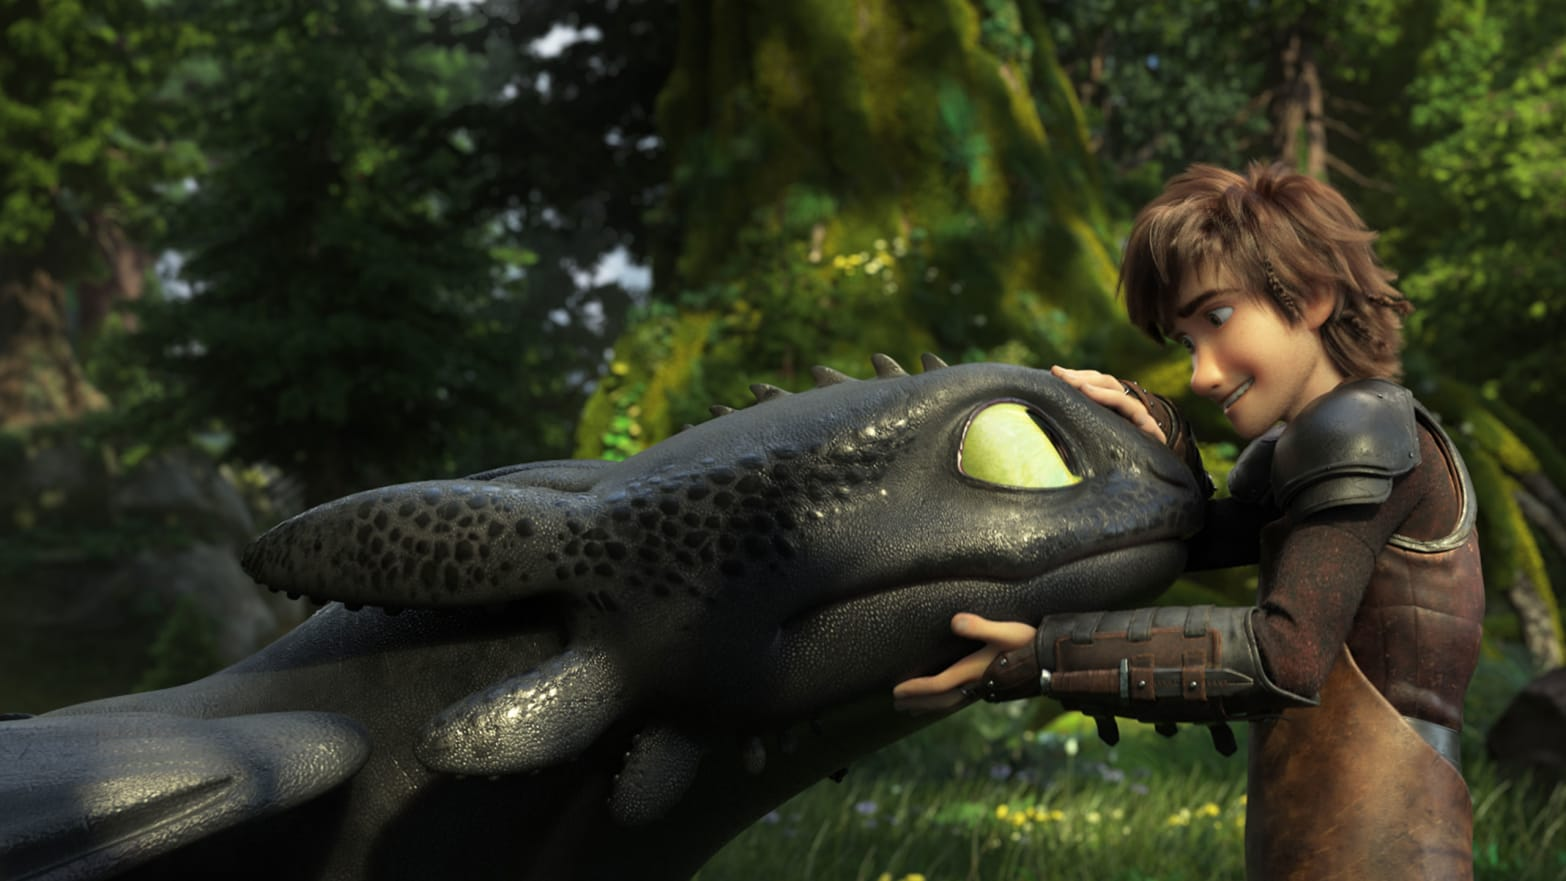 How to Train Your Dragon' Is the New 'Star Wars' Trilogy